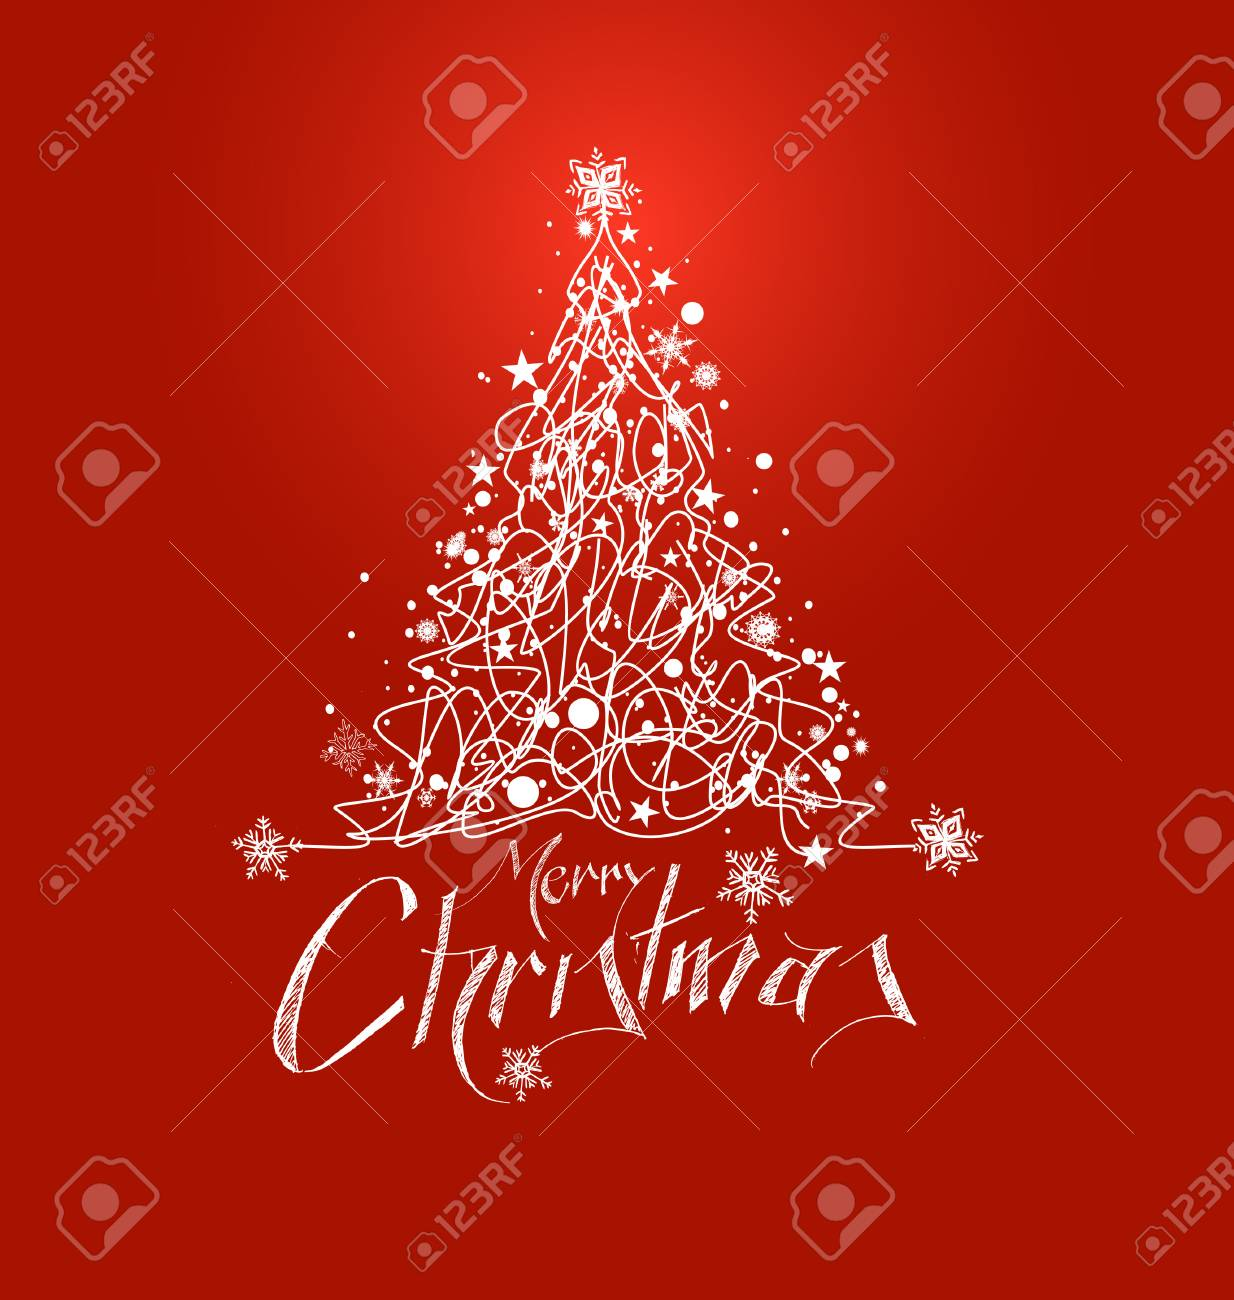 Merry Christmas! Christmas Background - Christmas Tree With Red ...